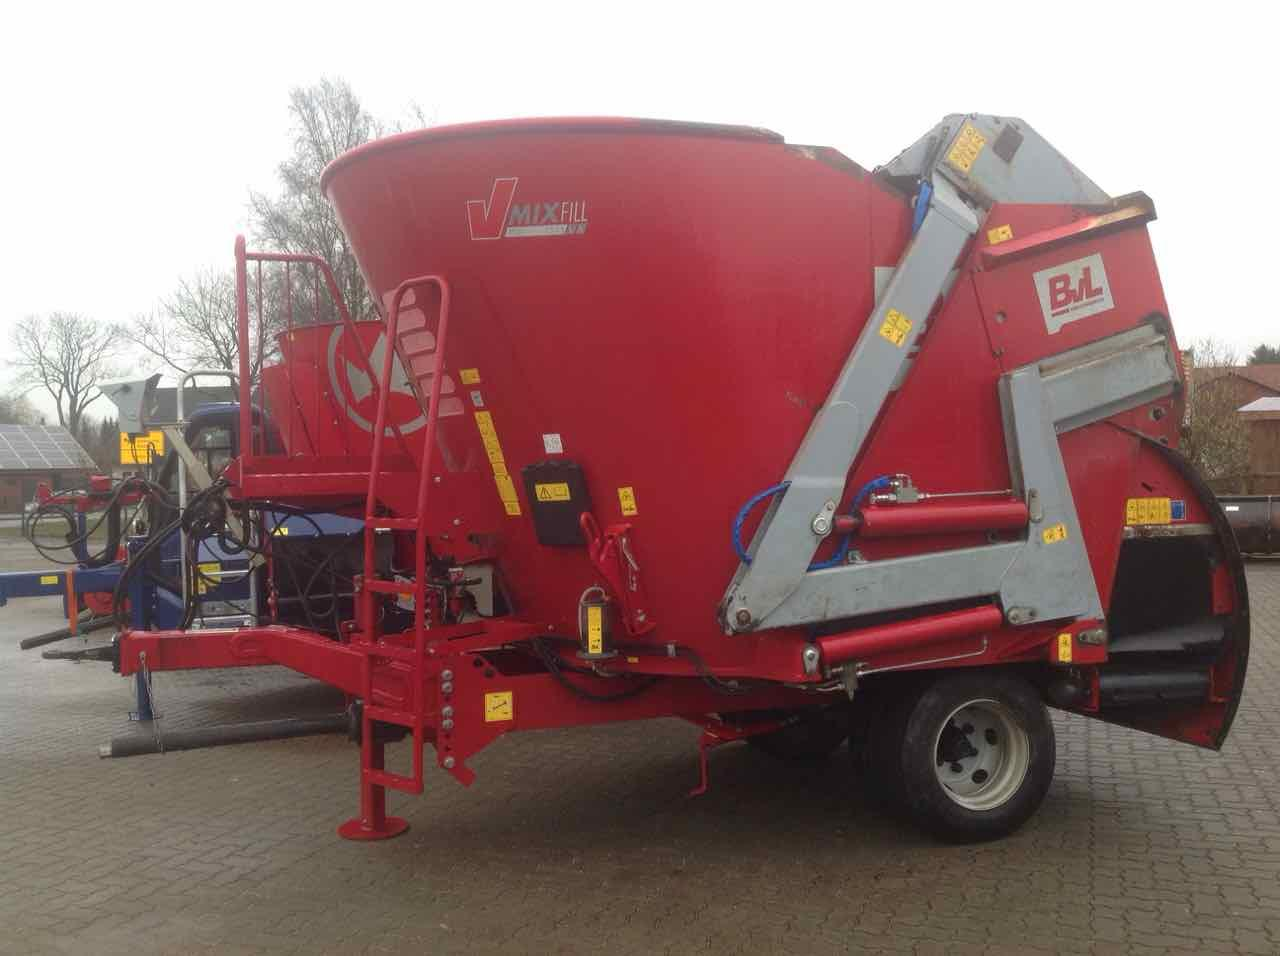 BVL - van Lengerich V-Mix Fill Plus 13 - 1 S LS